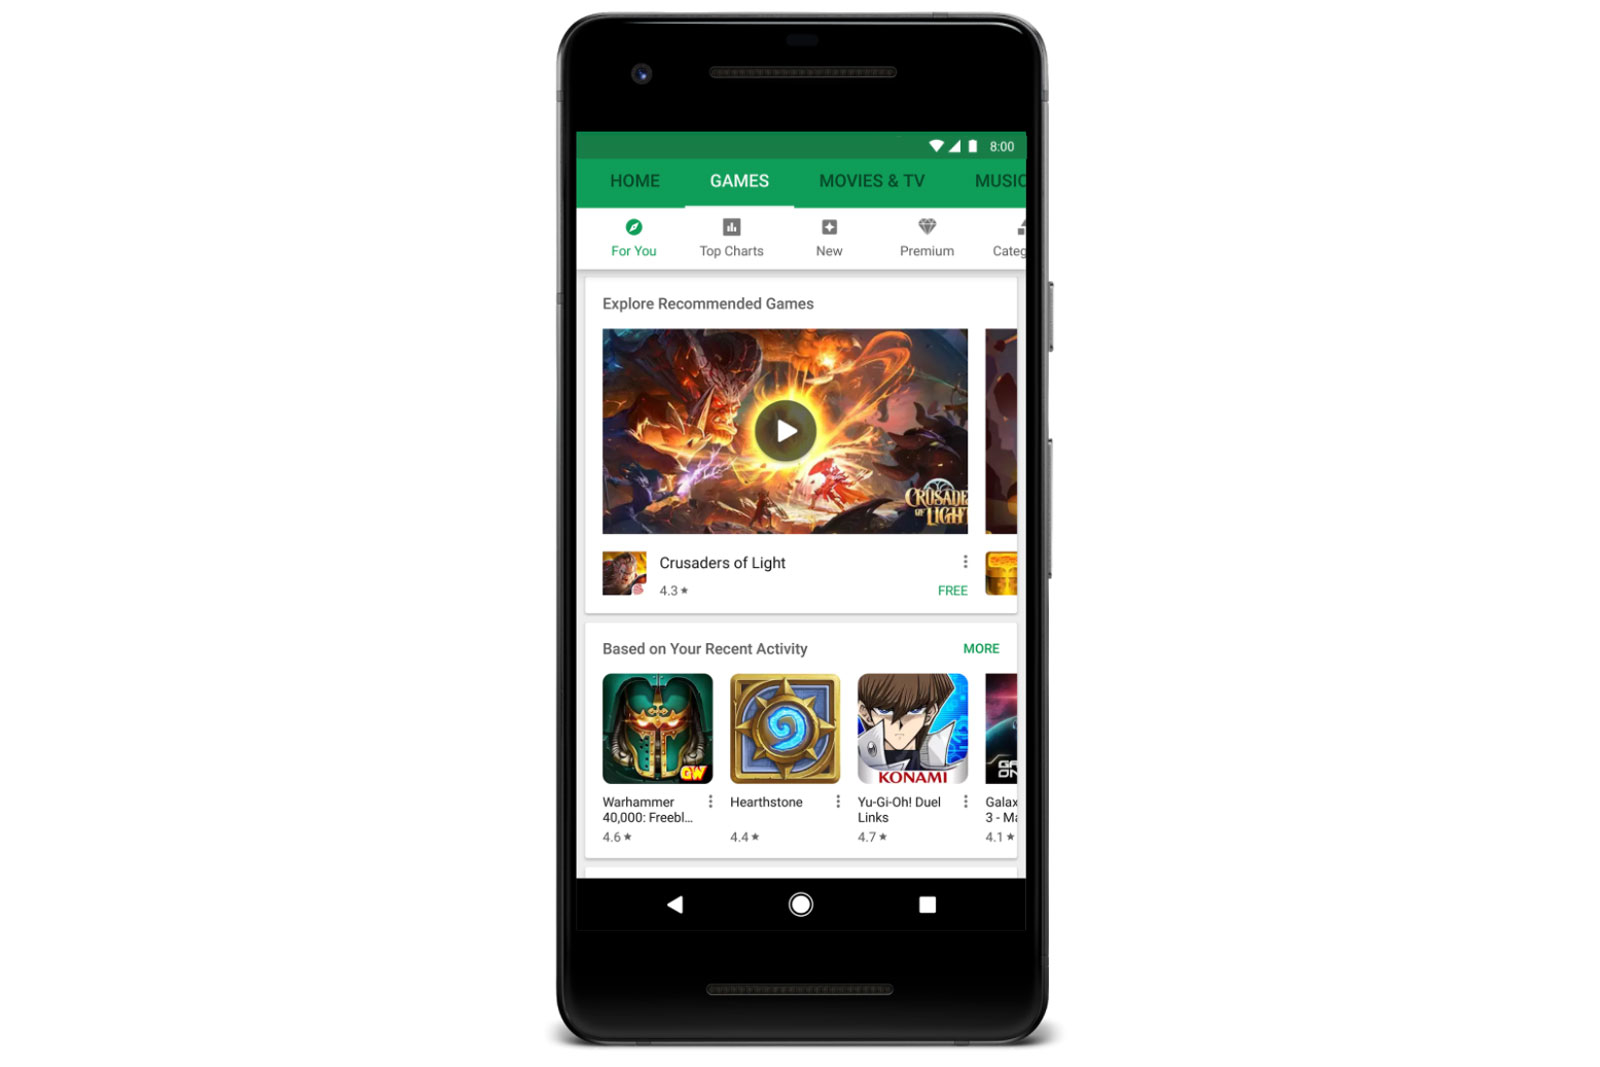 Google Play Games section